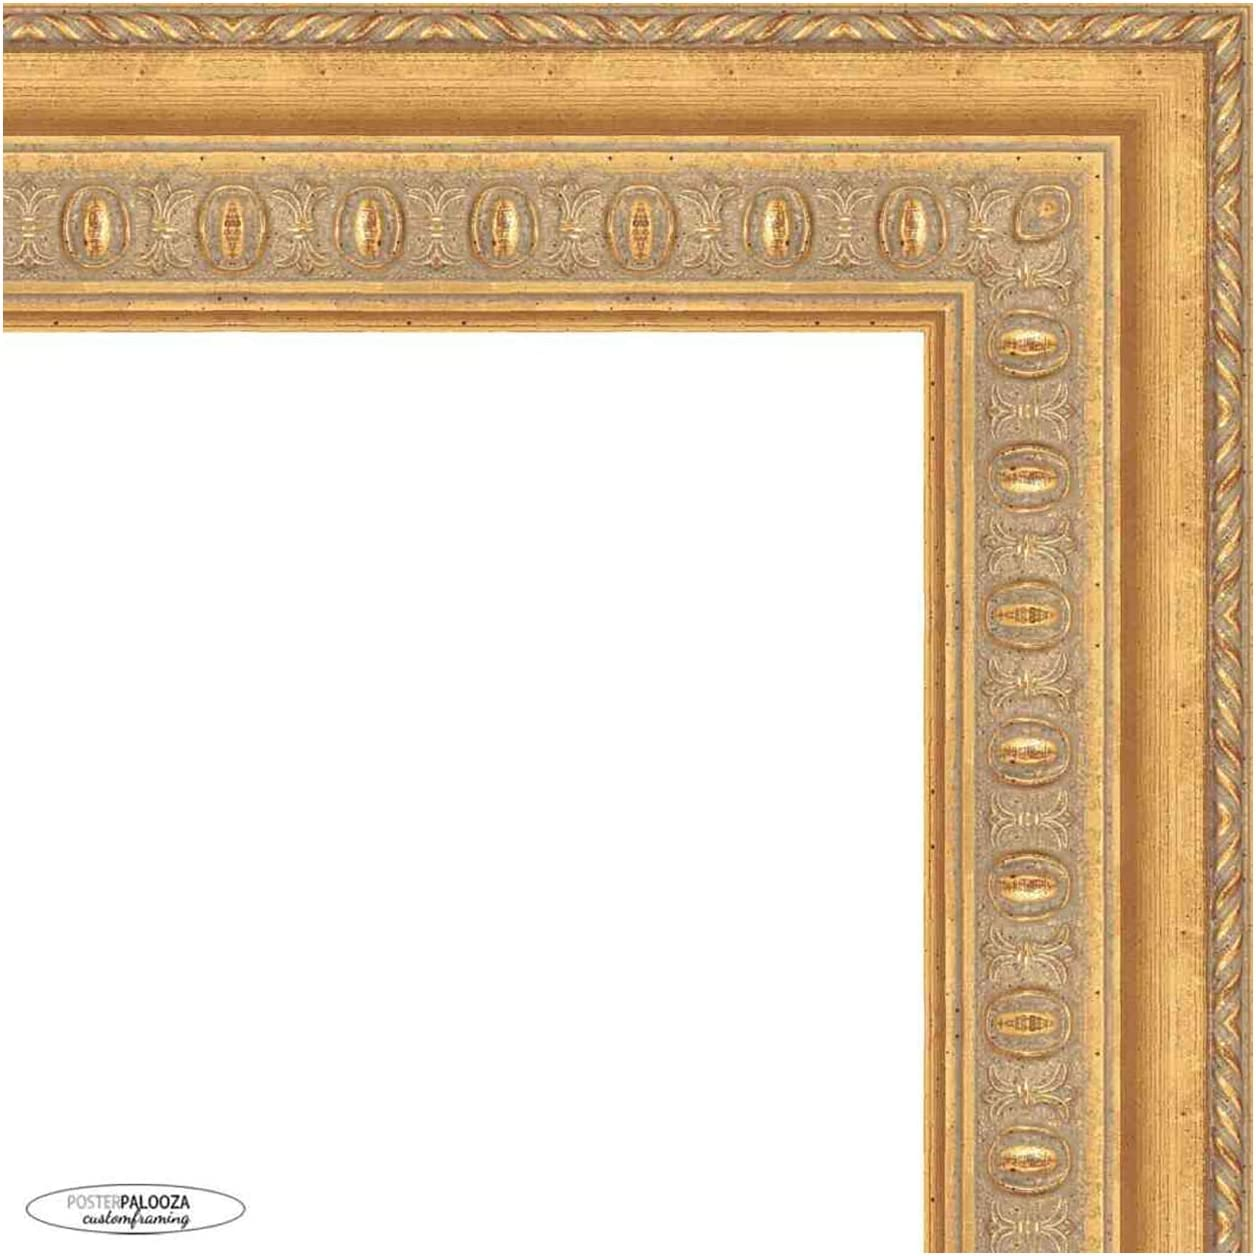 Many popular brands Poster Palooza 32x26 Traditional Gold Picture Regular store Complete Wood Fram